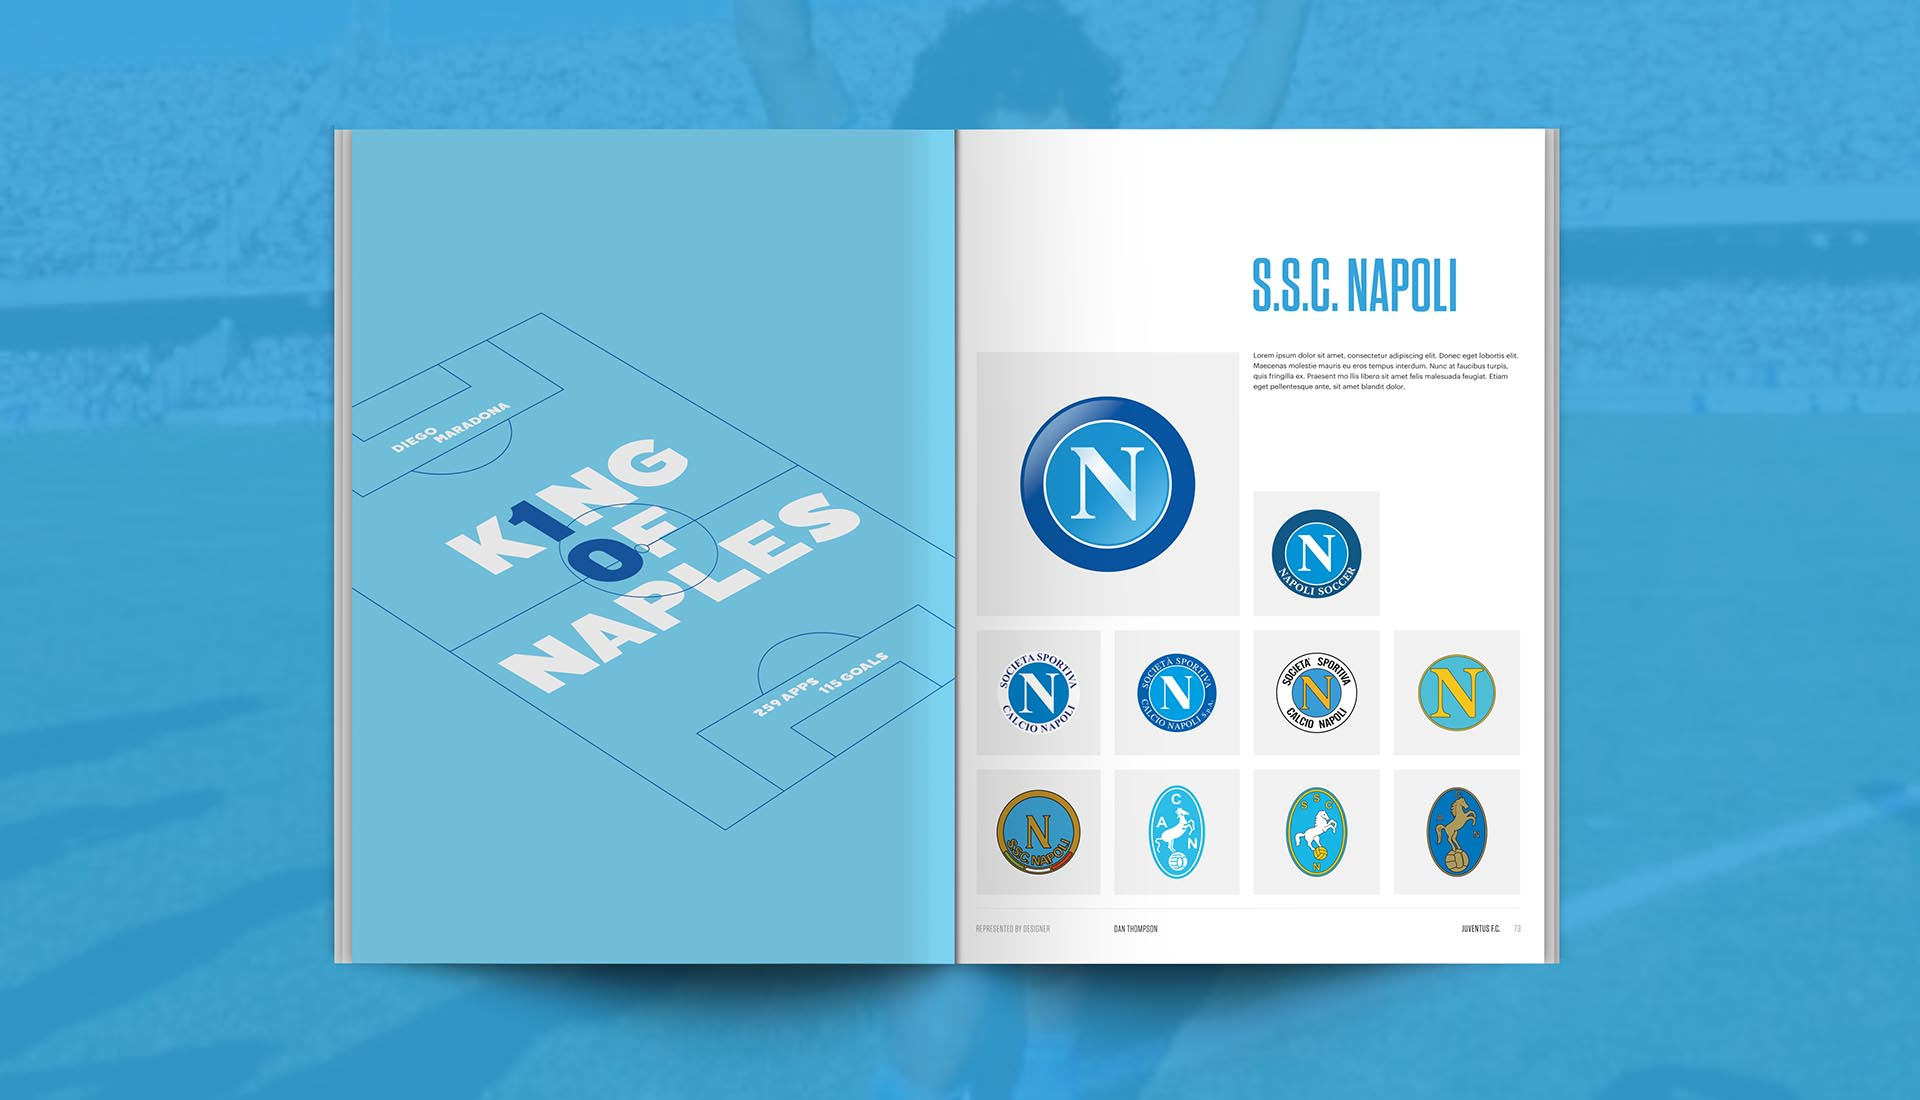 Football Crest Index Italy_0003_T2_Spread_Napoli.jpg